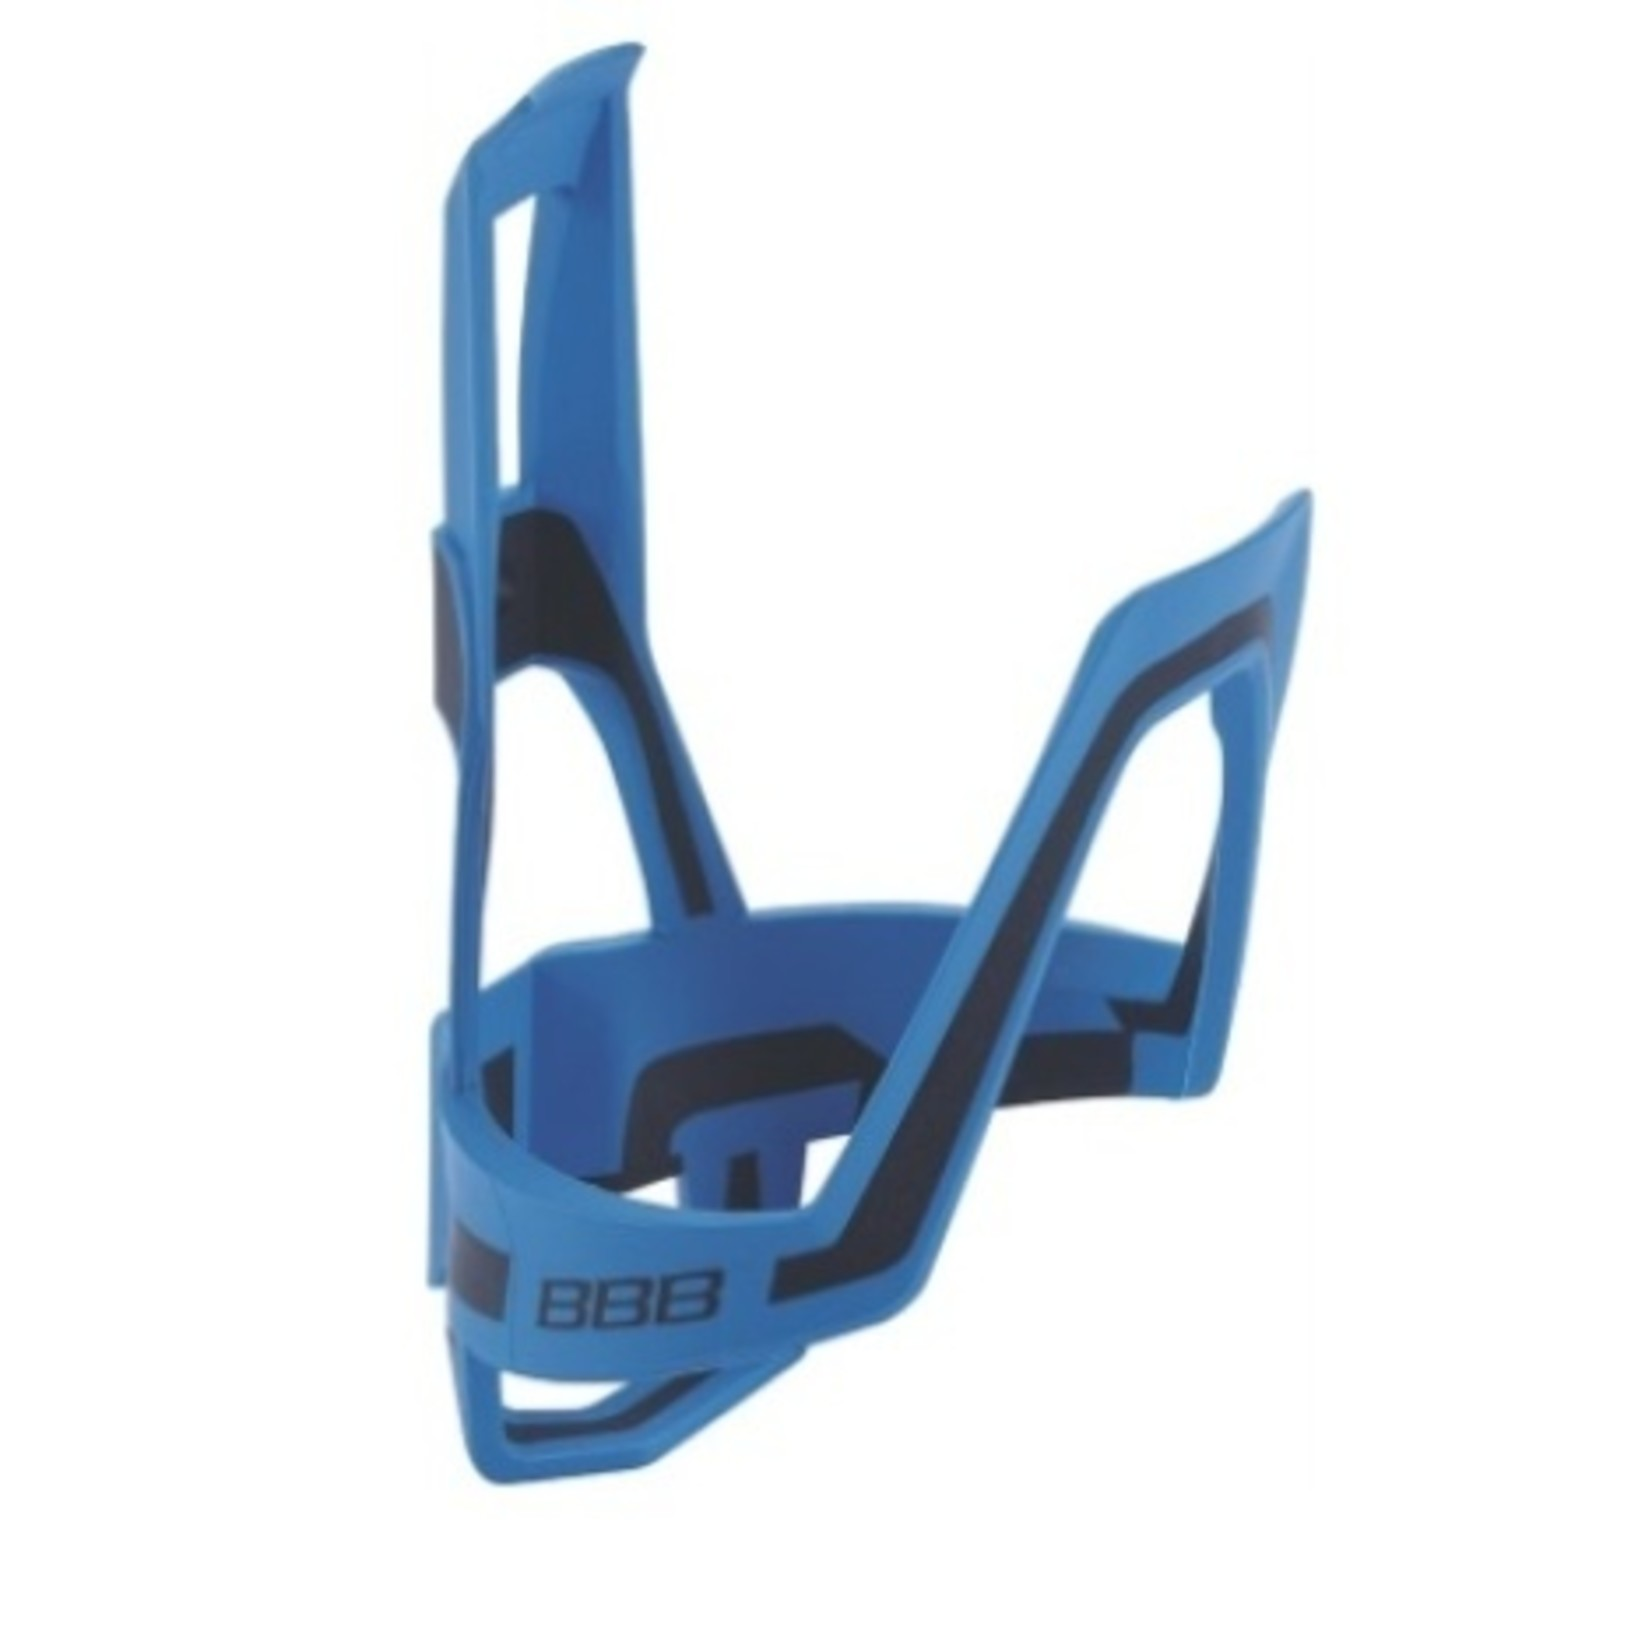 BBB Bottle Cage - Dual Cage - Blue - BBC-39